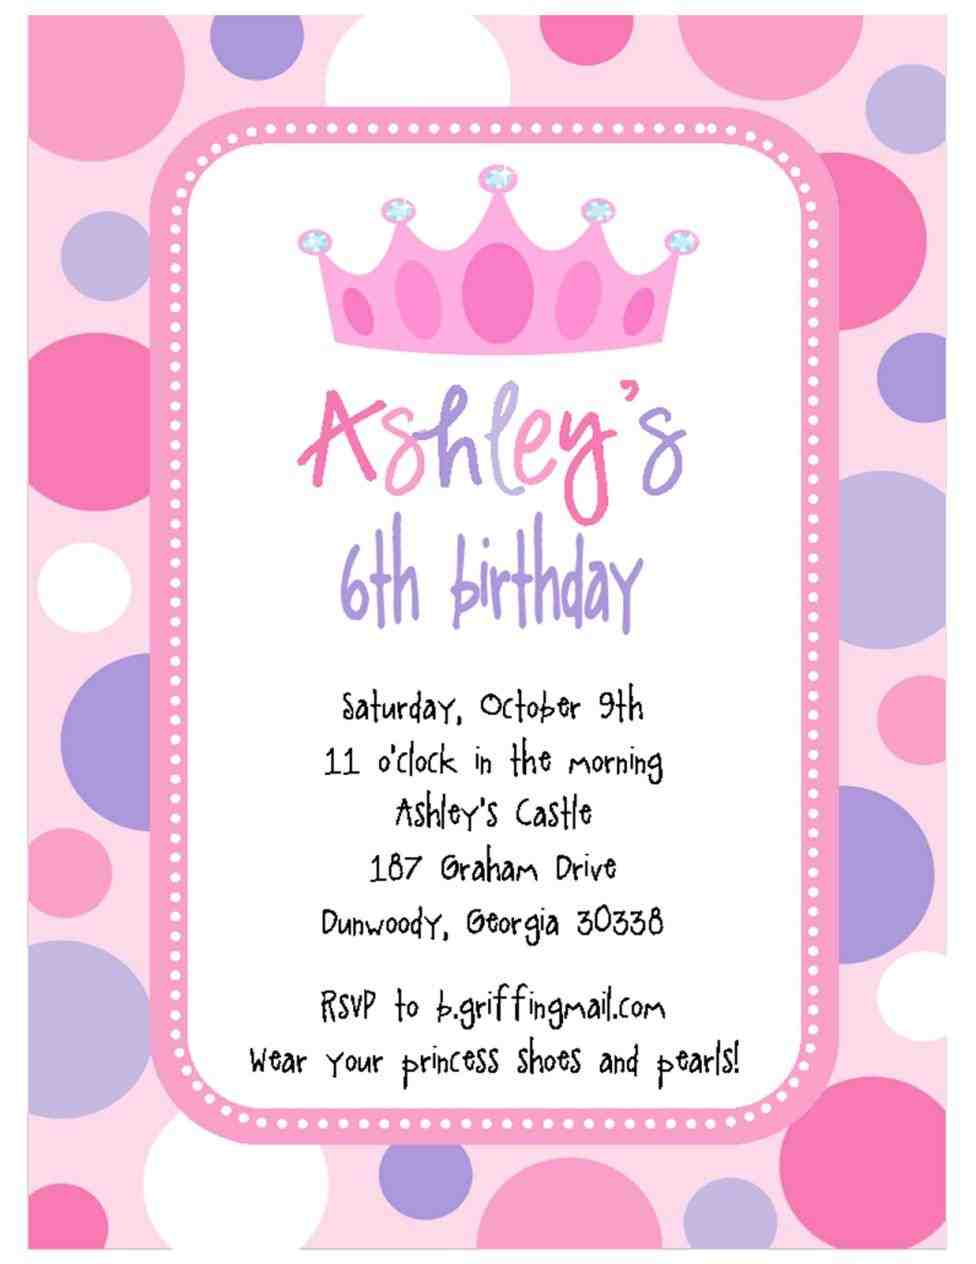 Royal Birthday Party Invitation Wording